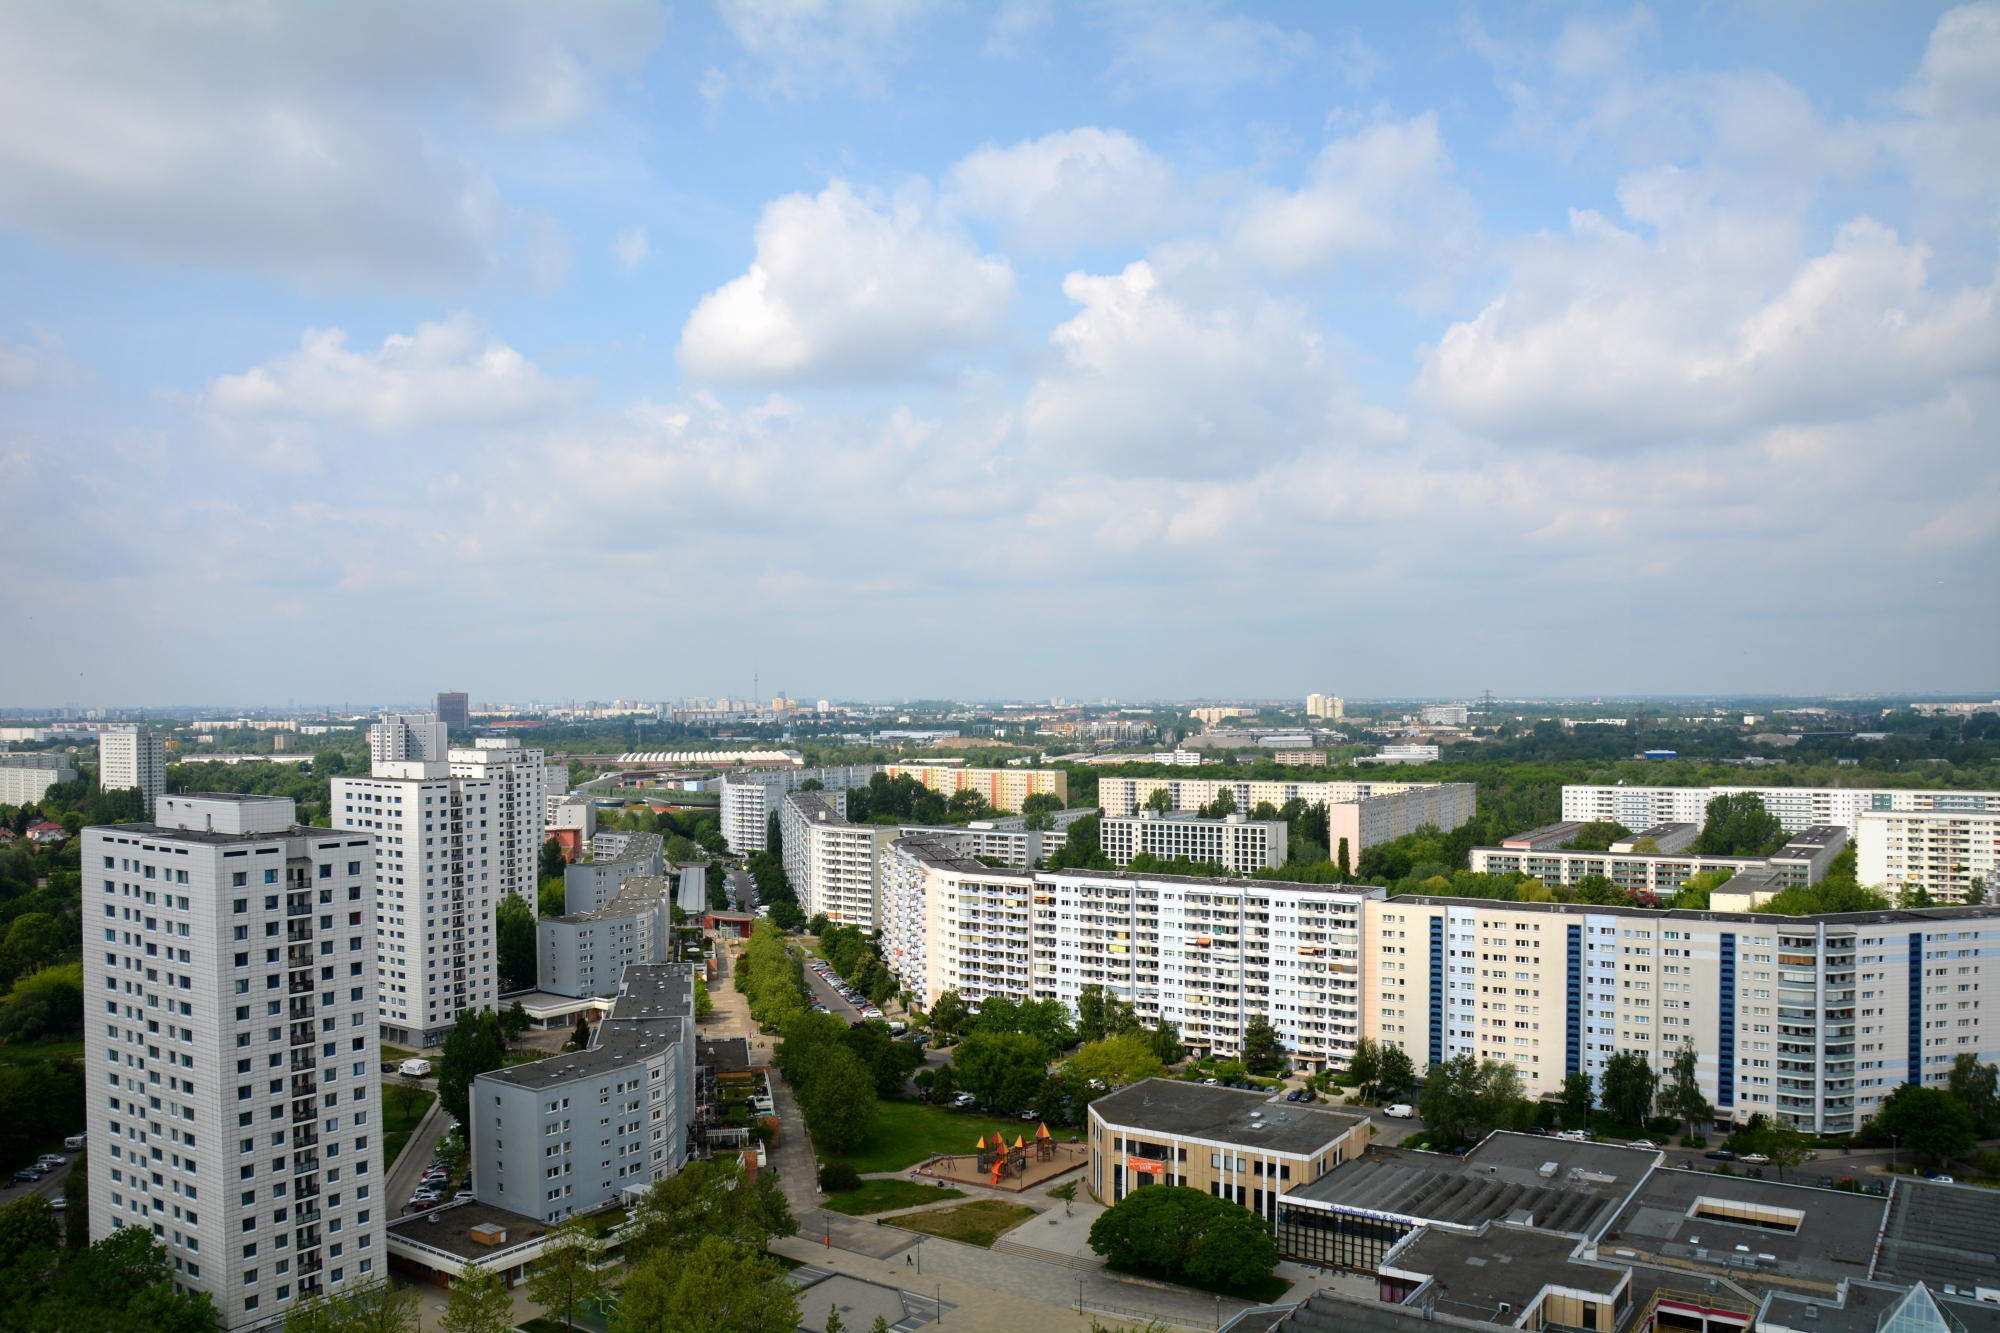 View from the Skywalk Marzahn, Germany